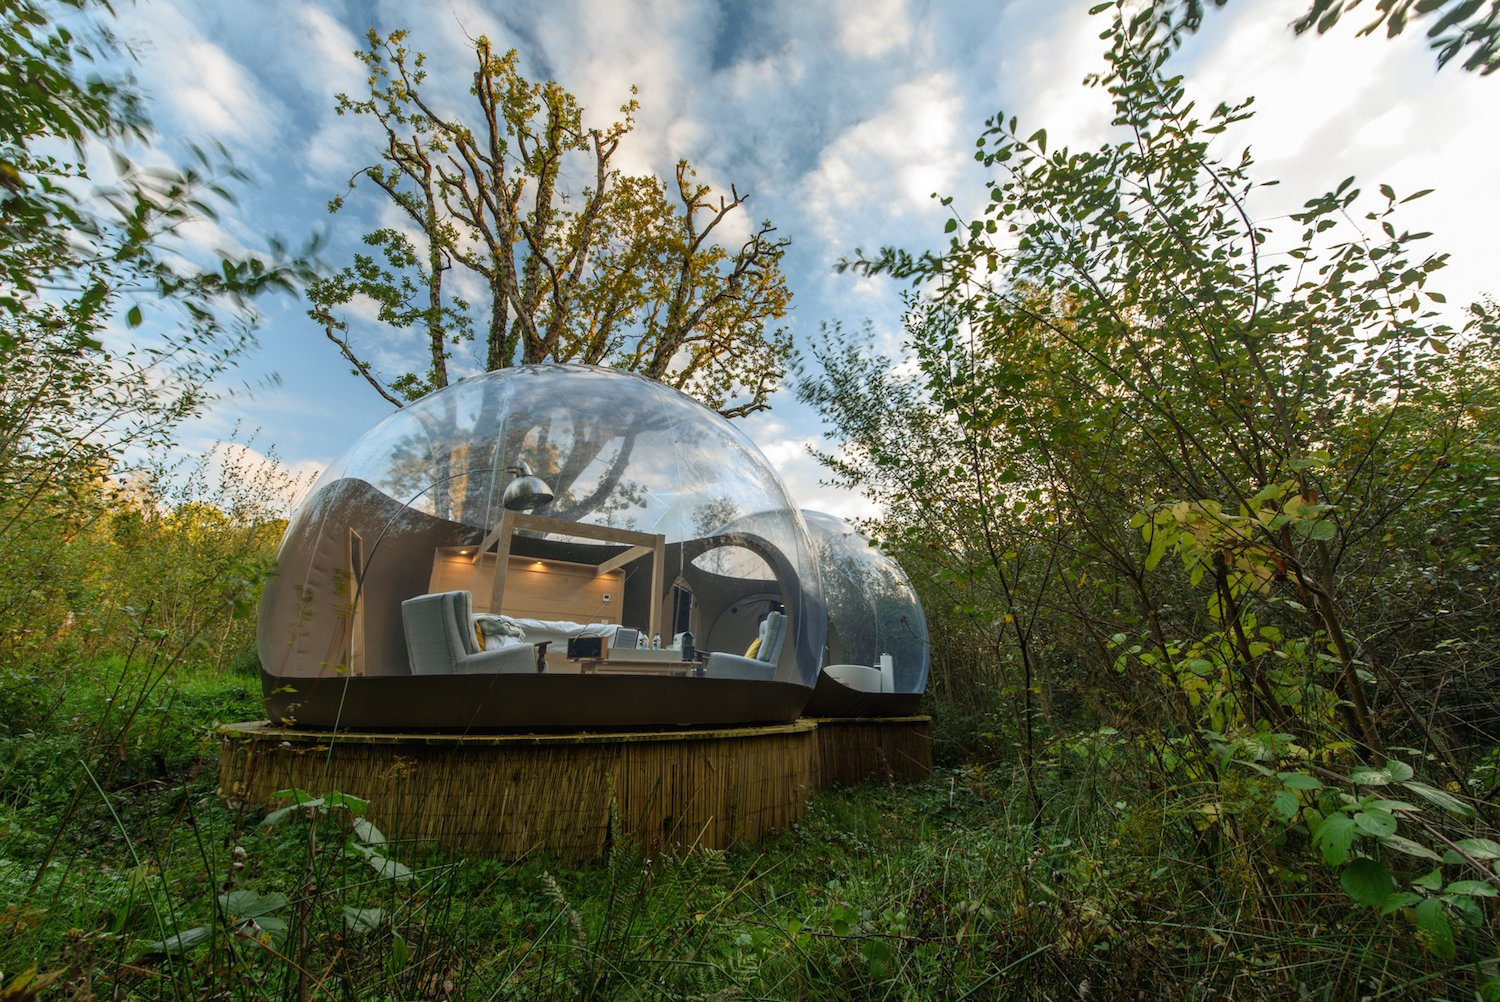 Awe Inspiring Bubble Domes In Ireland Allow You To